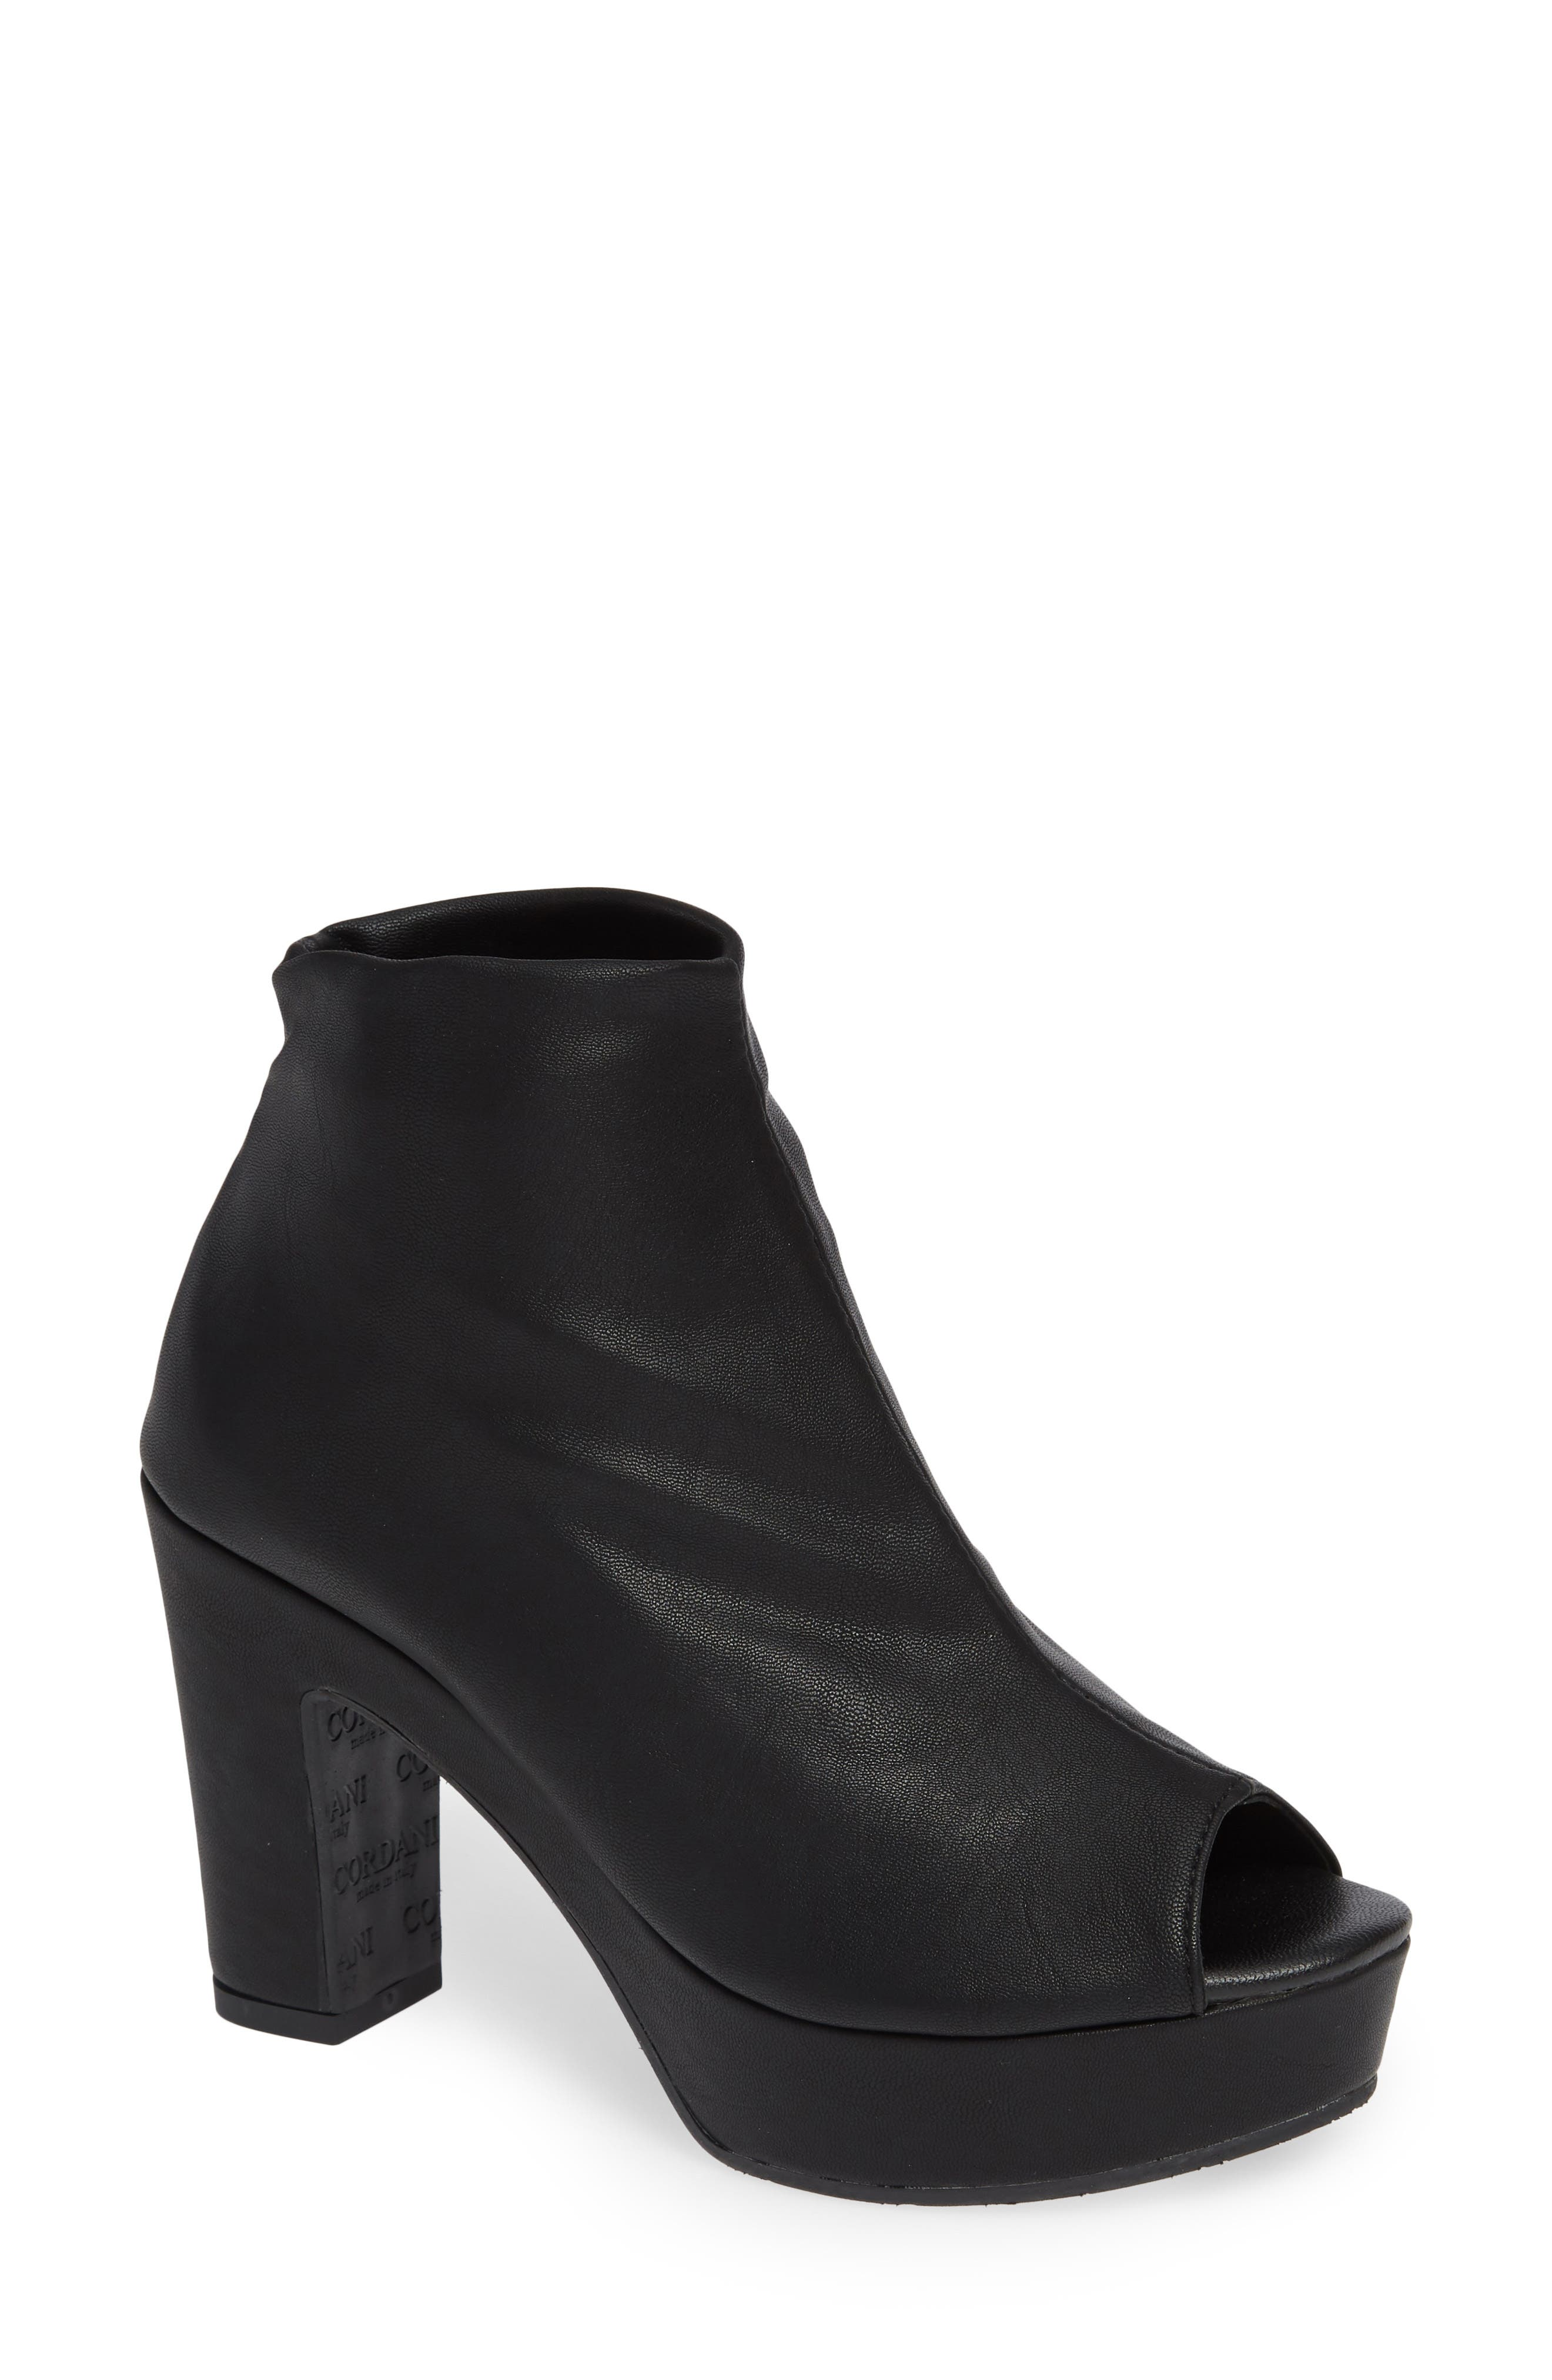 Tyra Peep Toe Platform Bootie,                             Main thumbnail 1, color,                             BLACK FABRIC